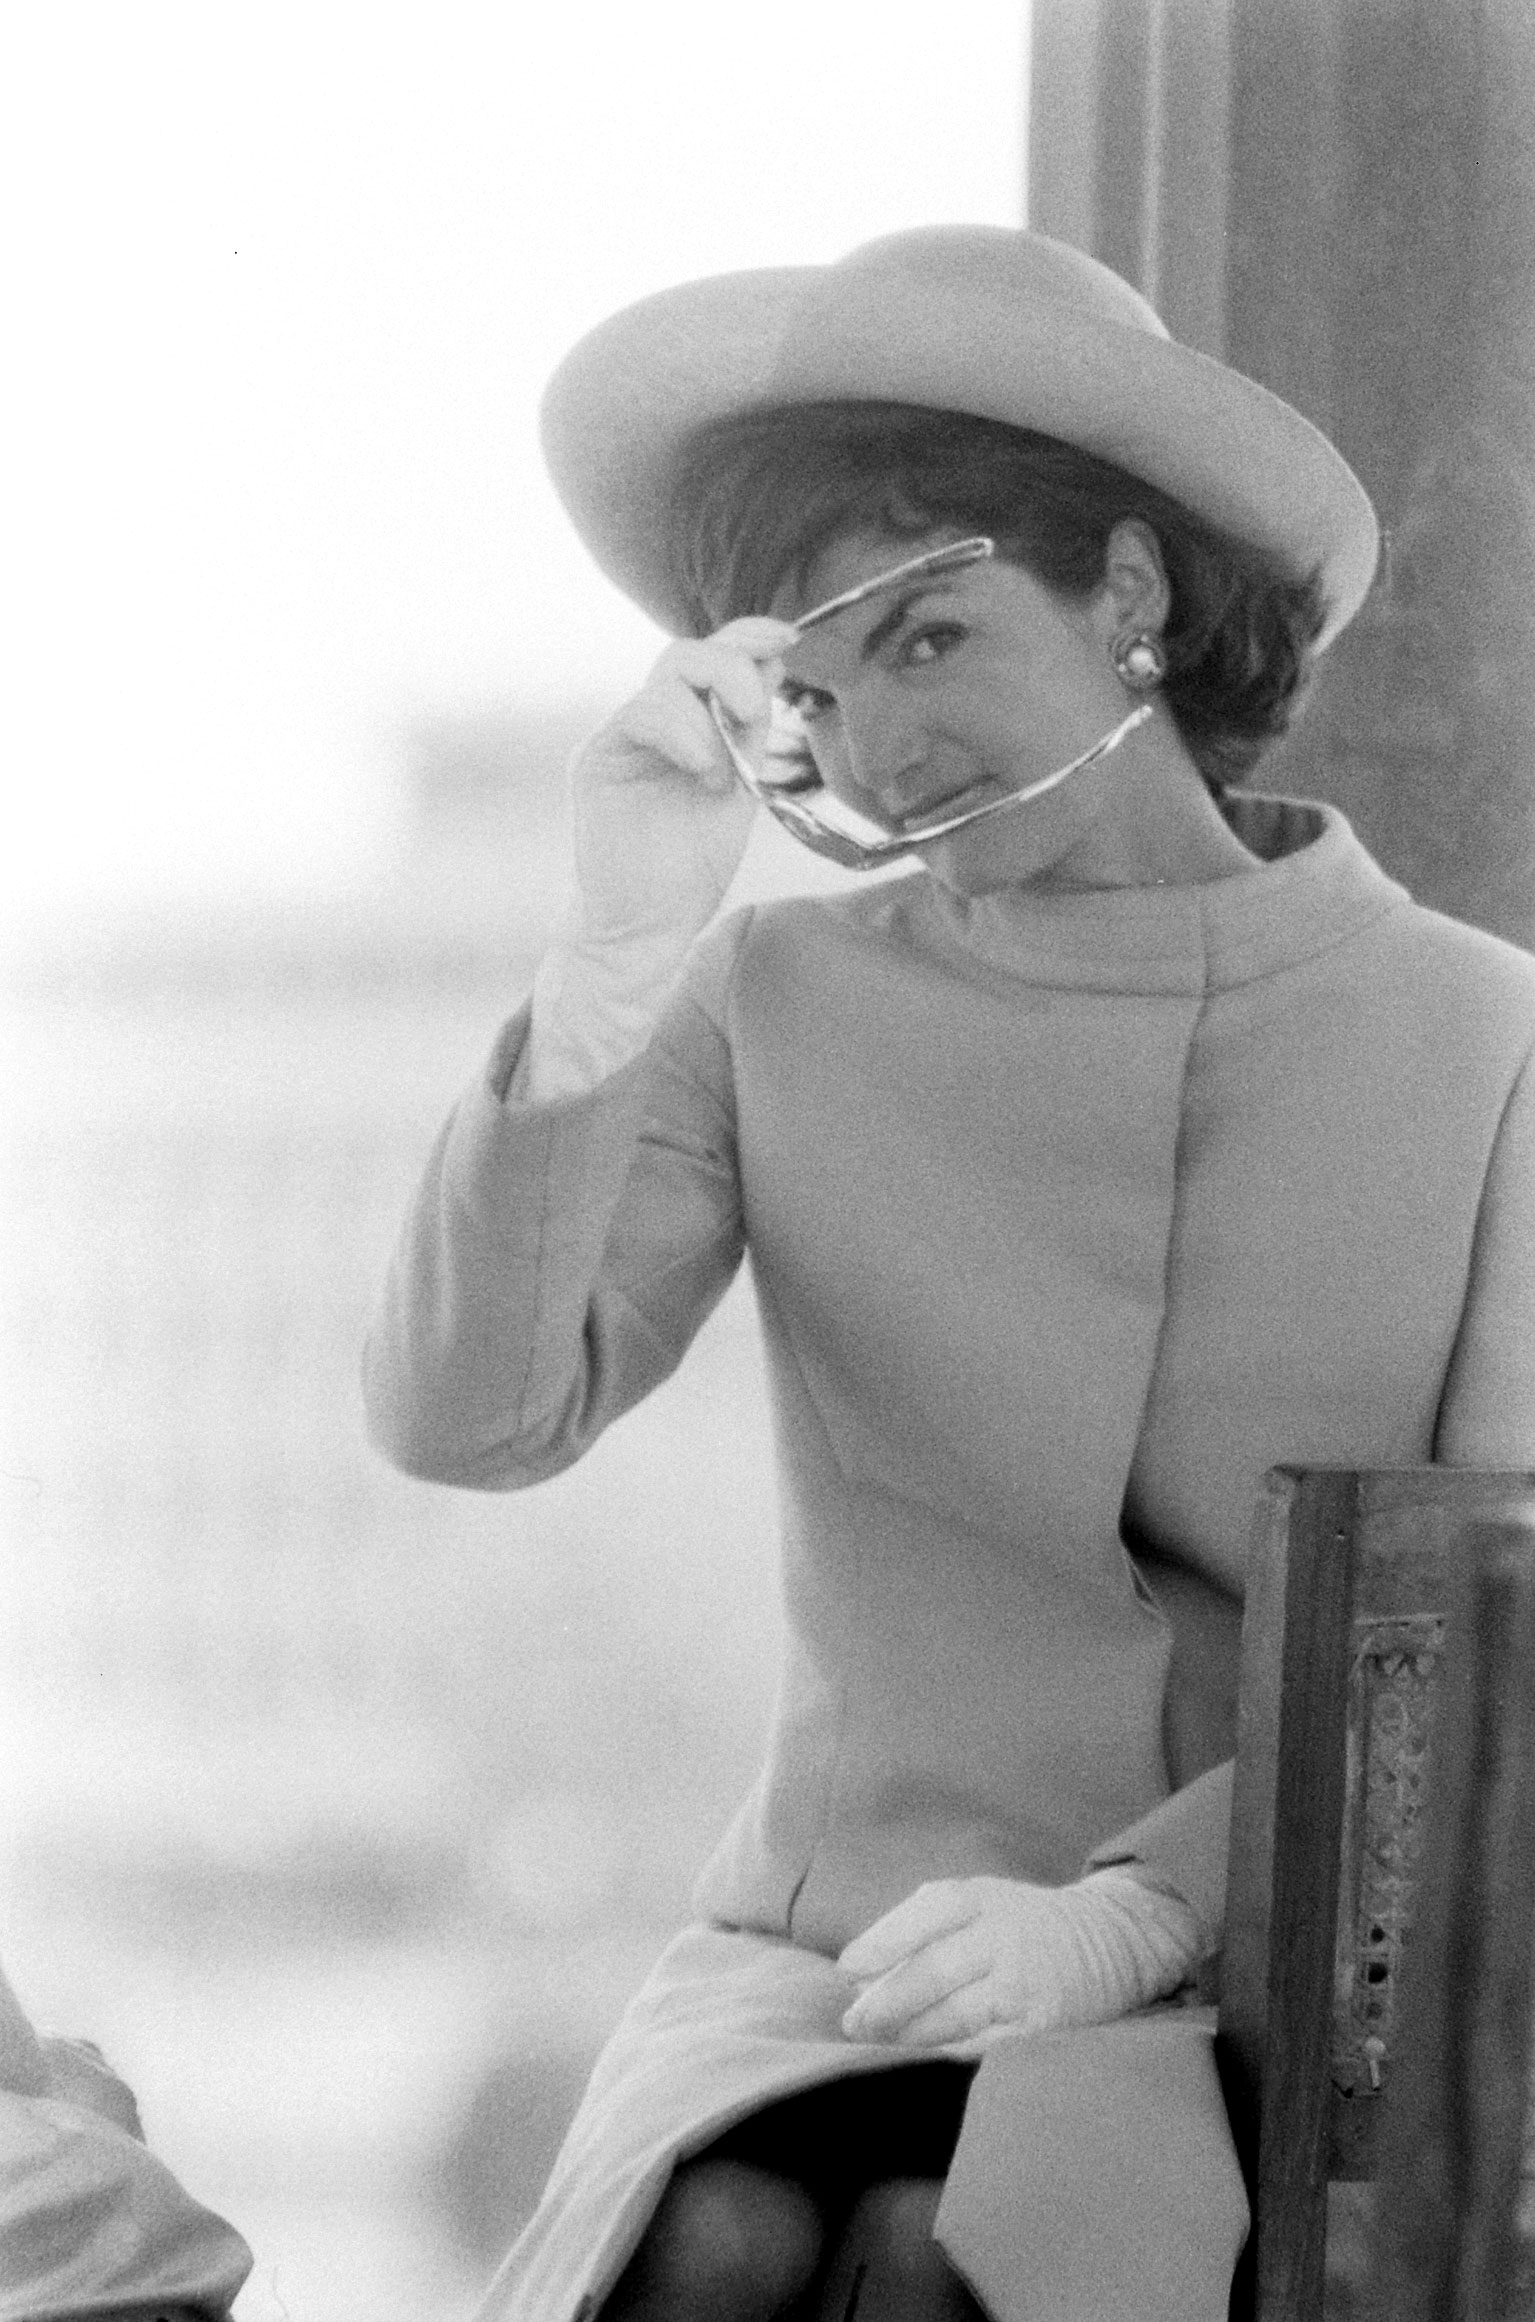 Jackie Kennedy on the first day of a trip to India, 1962.